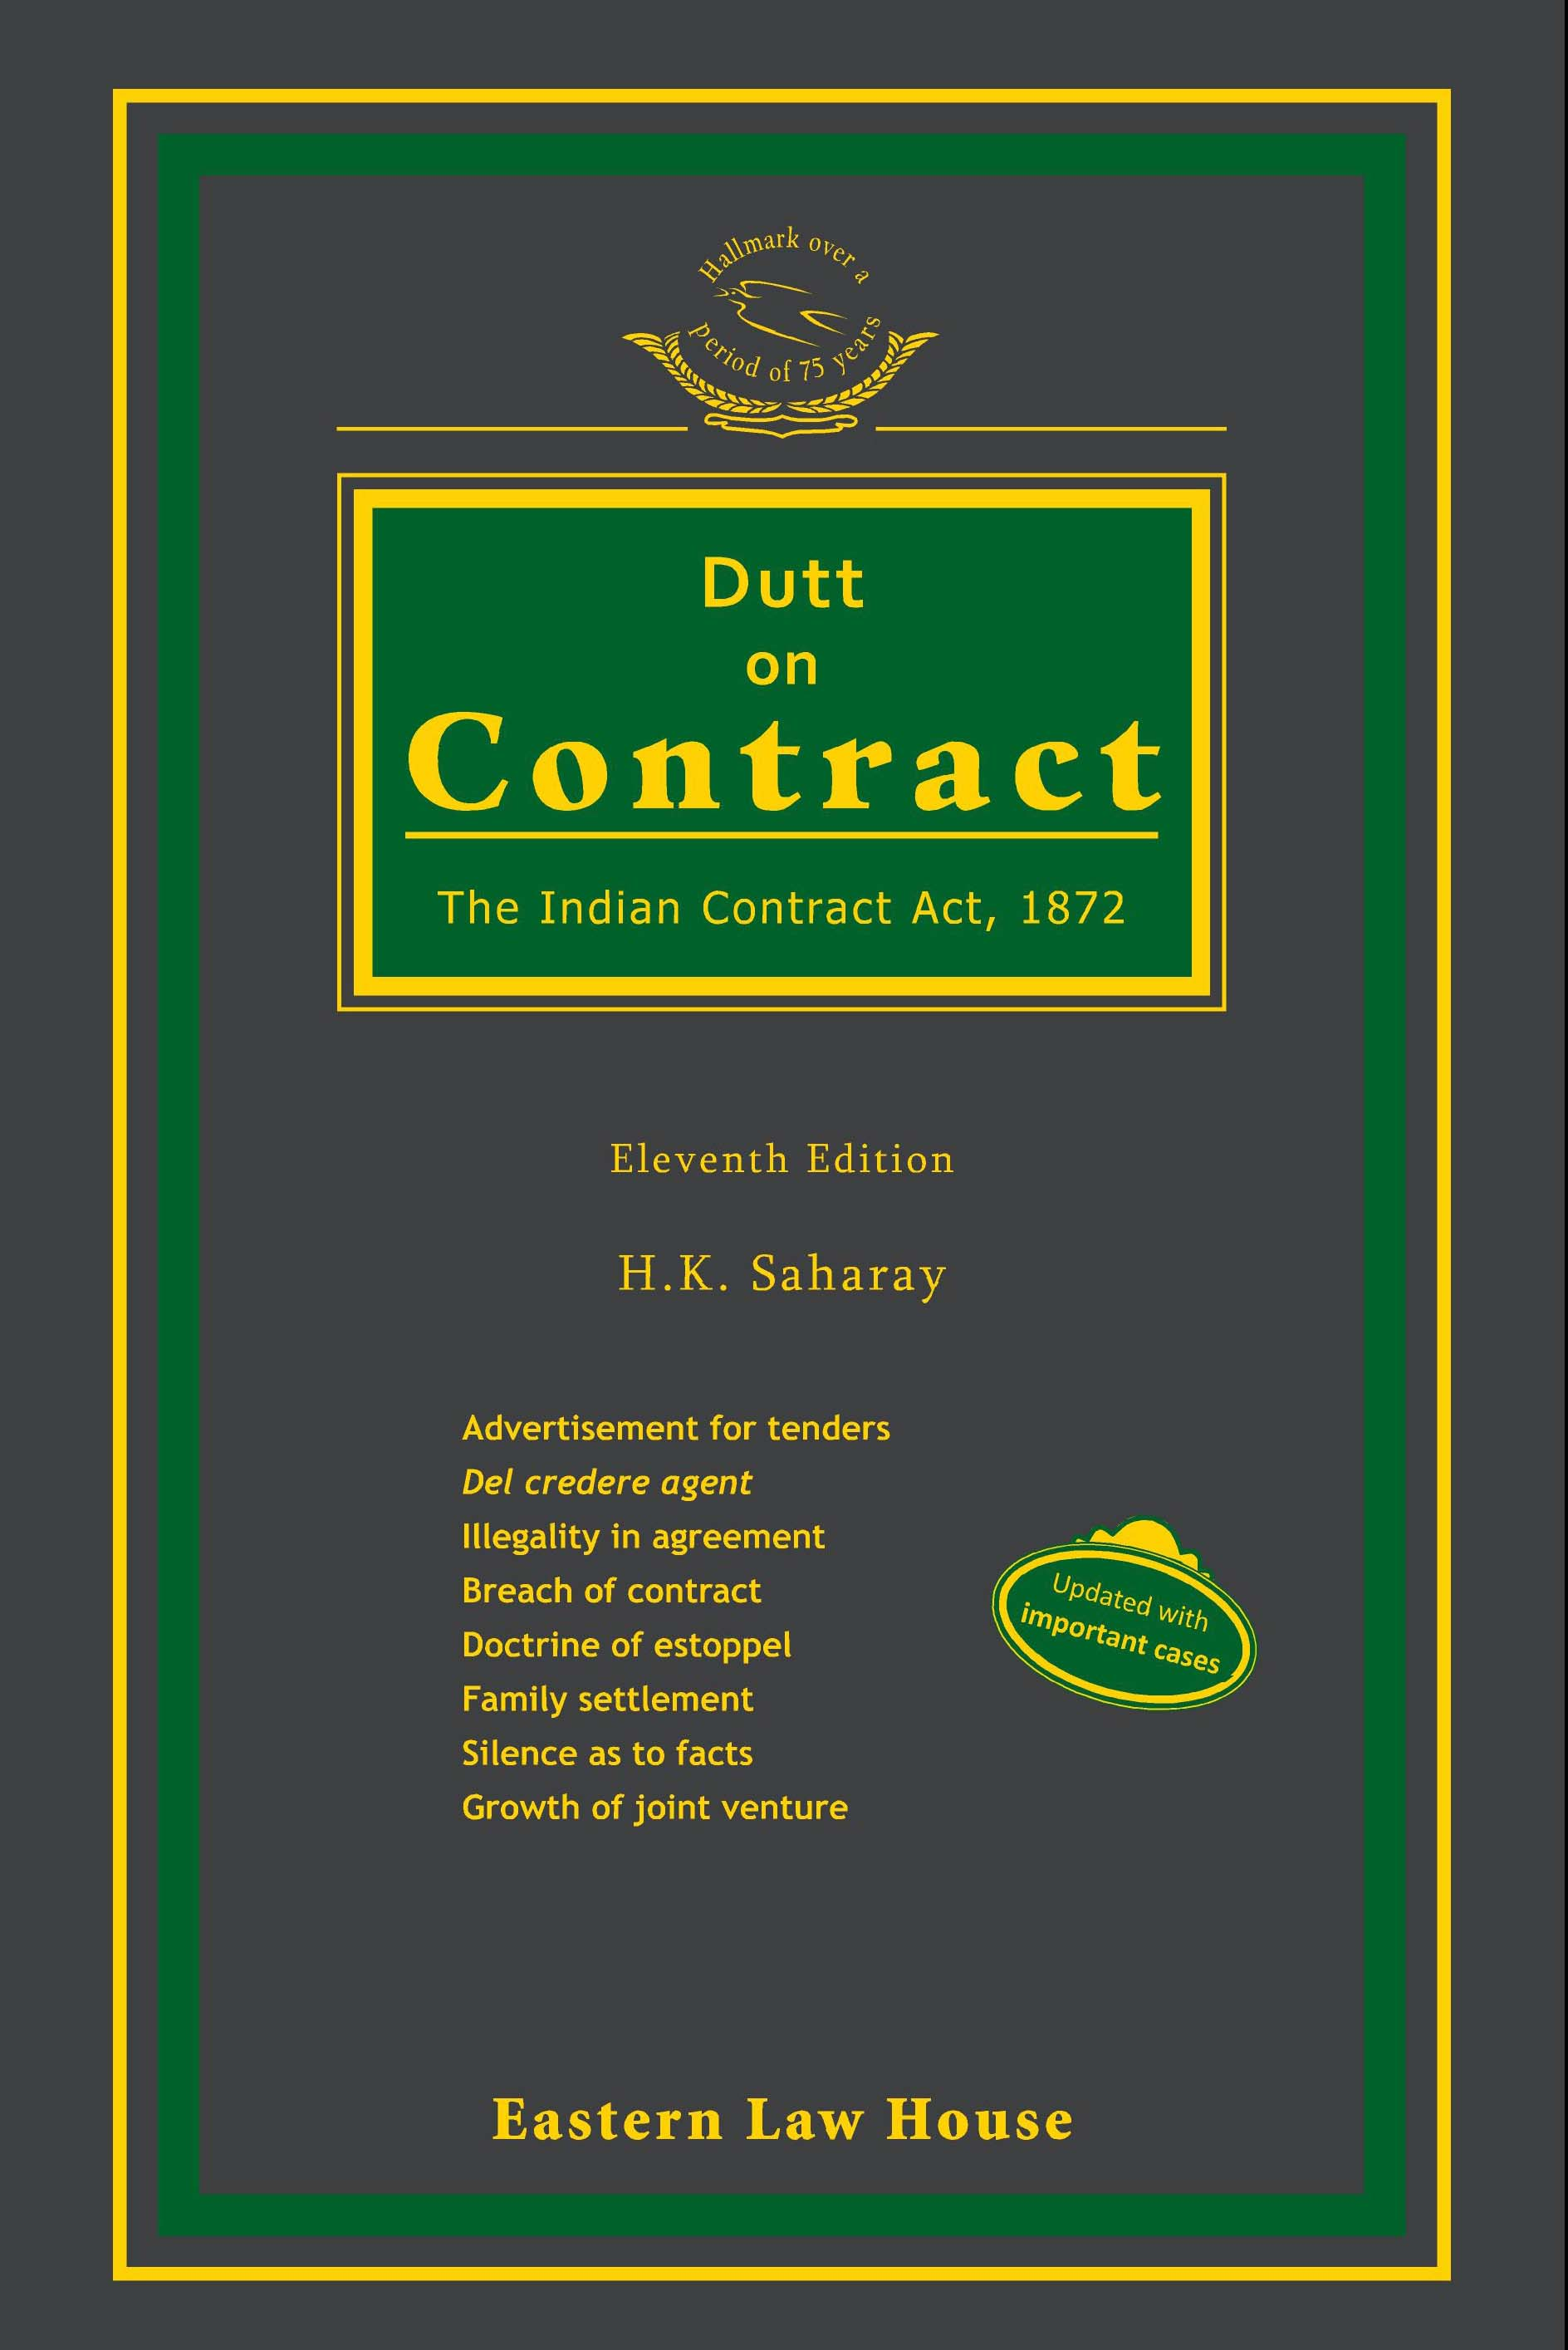 Dutt on Contract